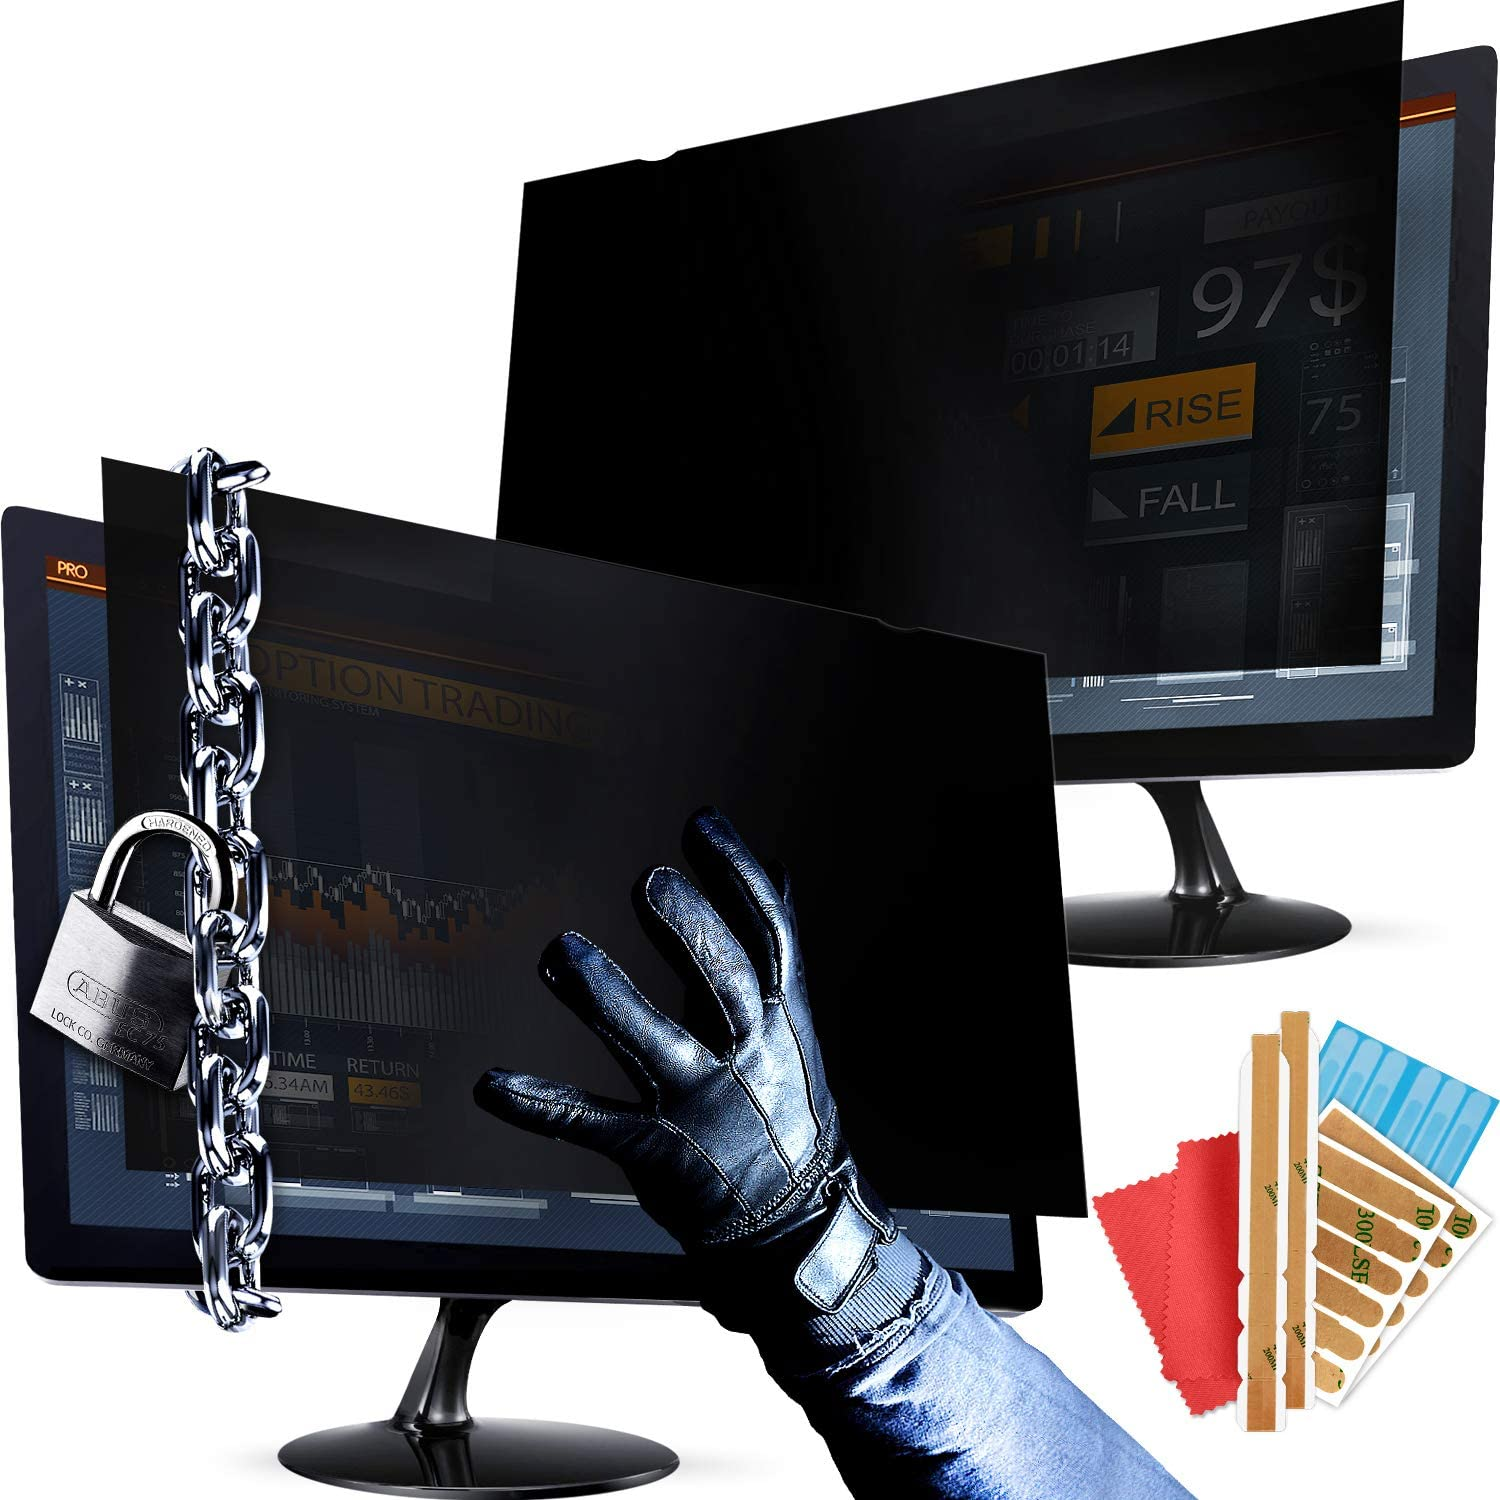 25 Inch 16:9 and 23.6 Screen Super popular specialty store Filters Privacy Computer Max 76% OFF